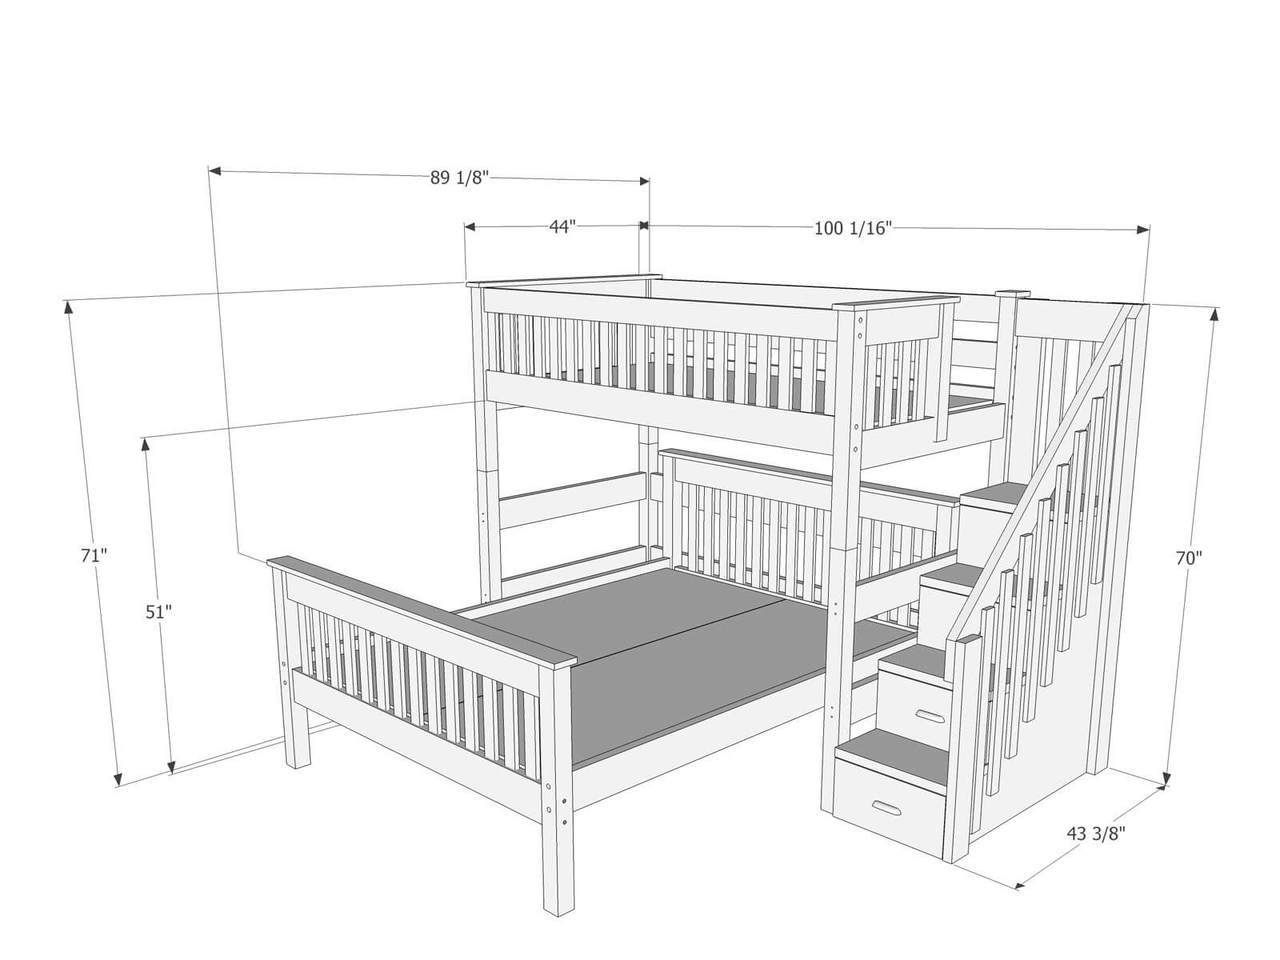 Dimensions Of Bunk Bed With Stairs L159 Bunk Beds Bunk Beds